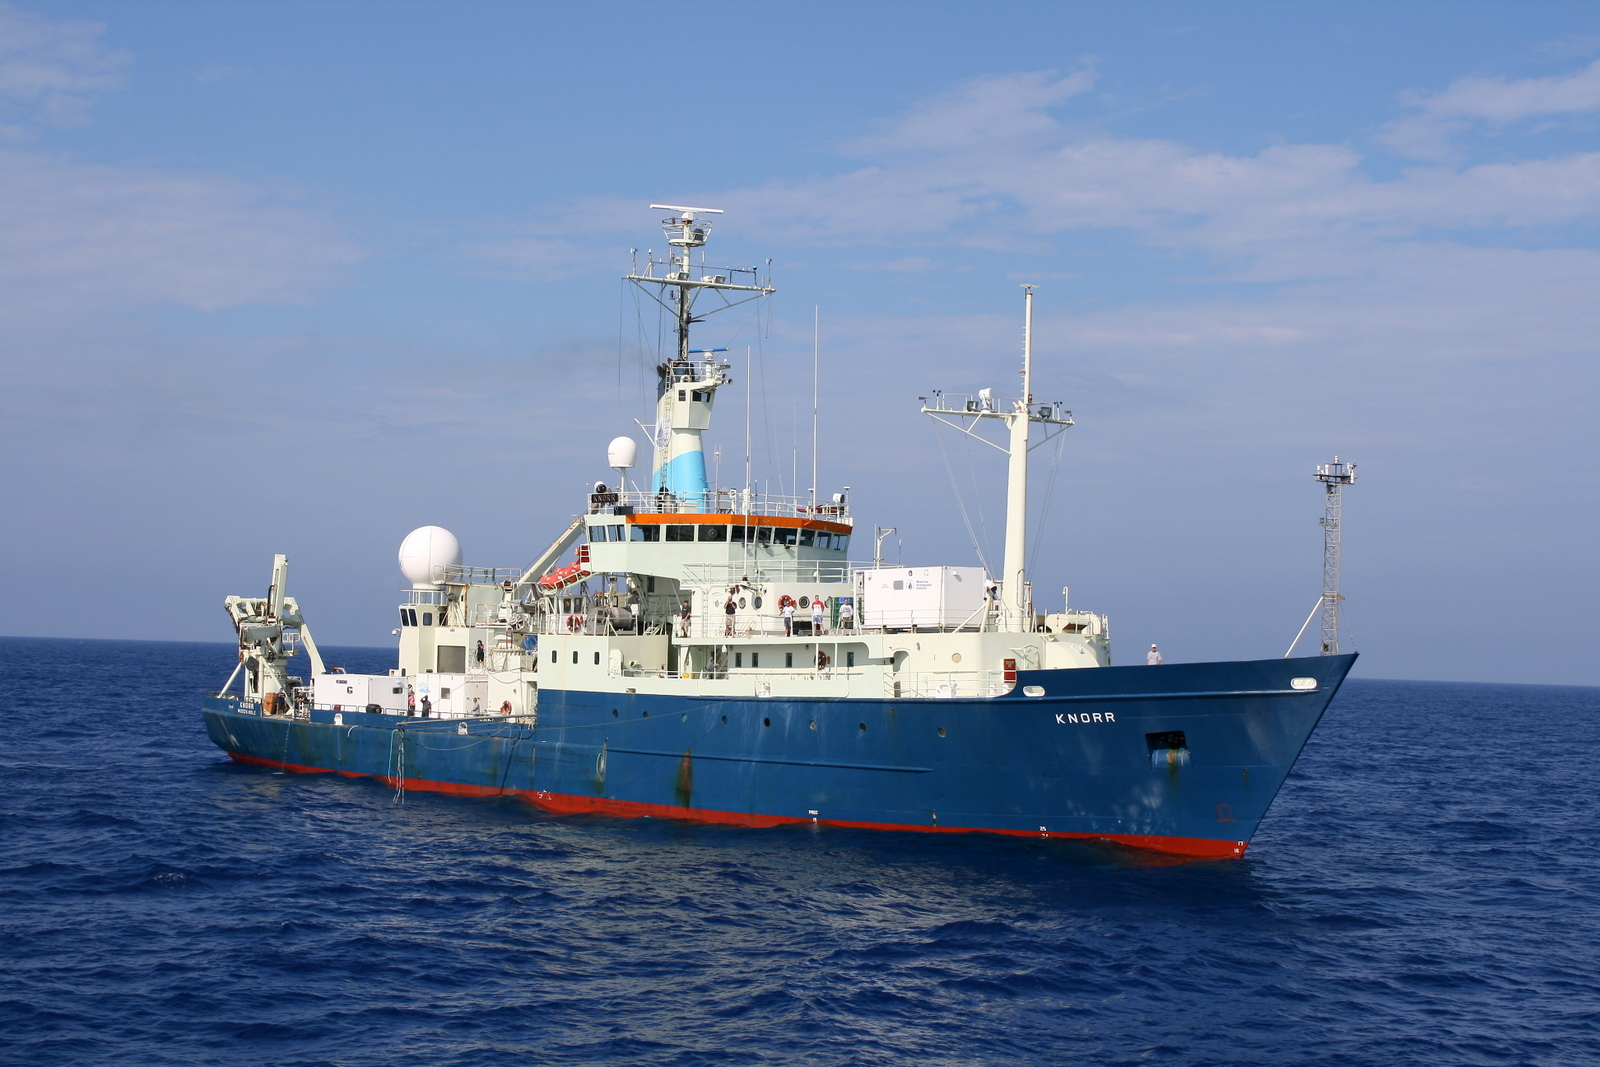 The R/V Knorr was operated by Woods Hole Oceanographic Institution from 1970-2016. It was used on the GEOTRACES expeditions in 2010-2011 during which iron aerosol samples were collected for the study led by the USF College of Marine Science.